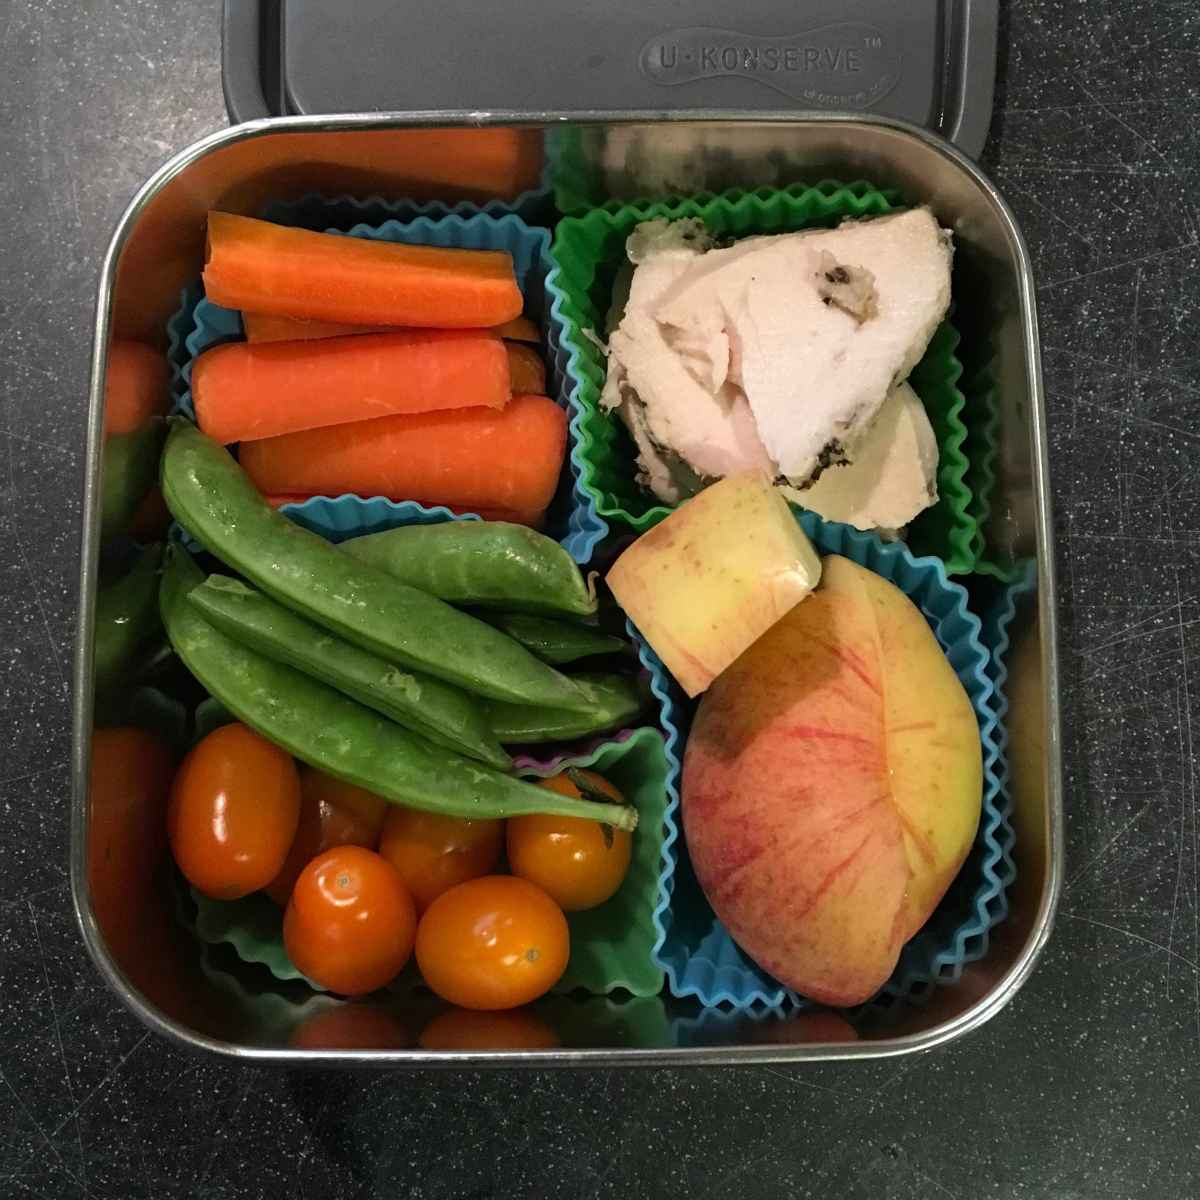 Veggies, fruit, and meat separated in U Konserve square steel dish using silicone cups